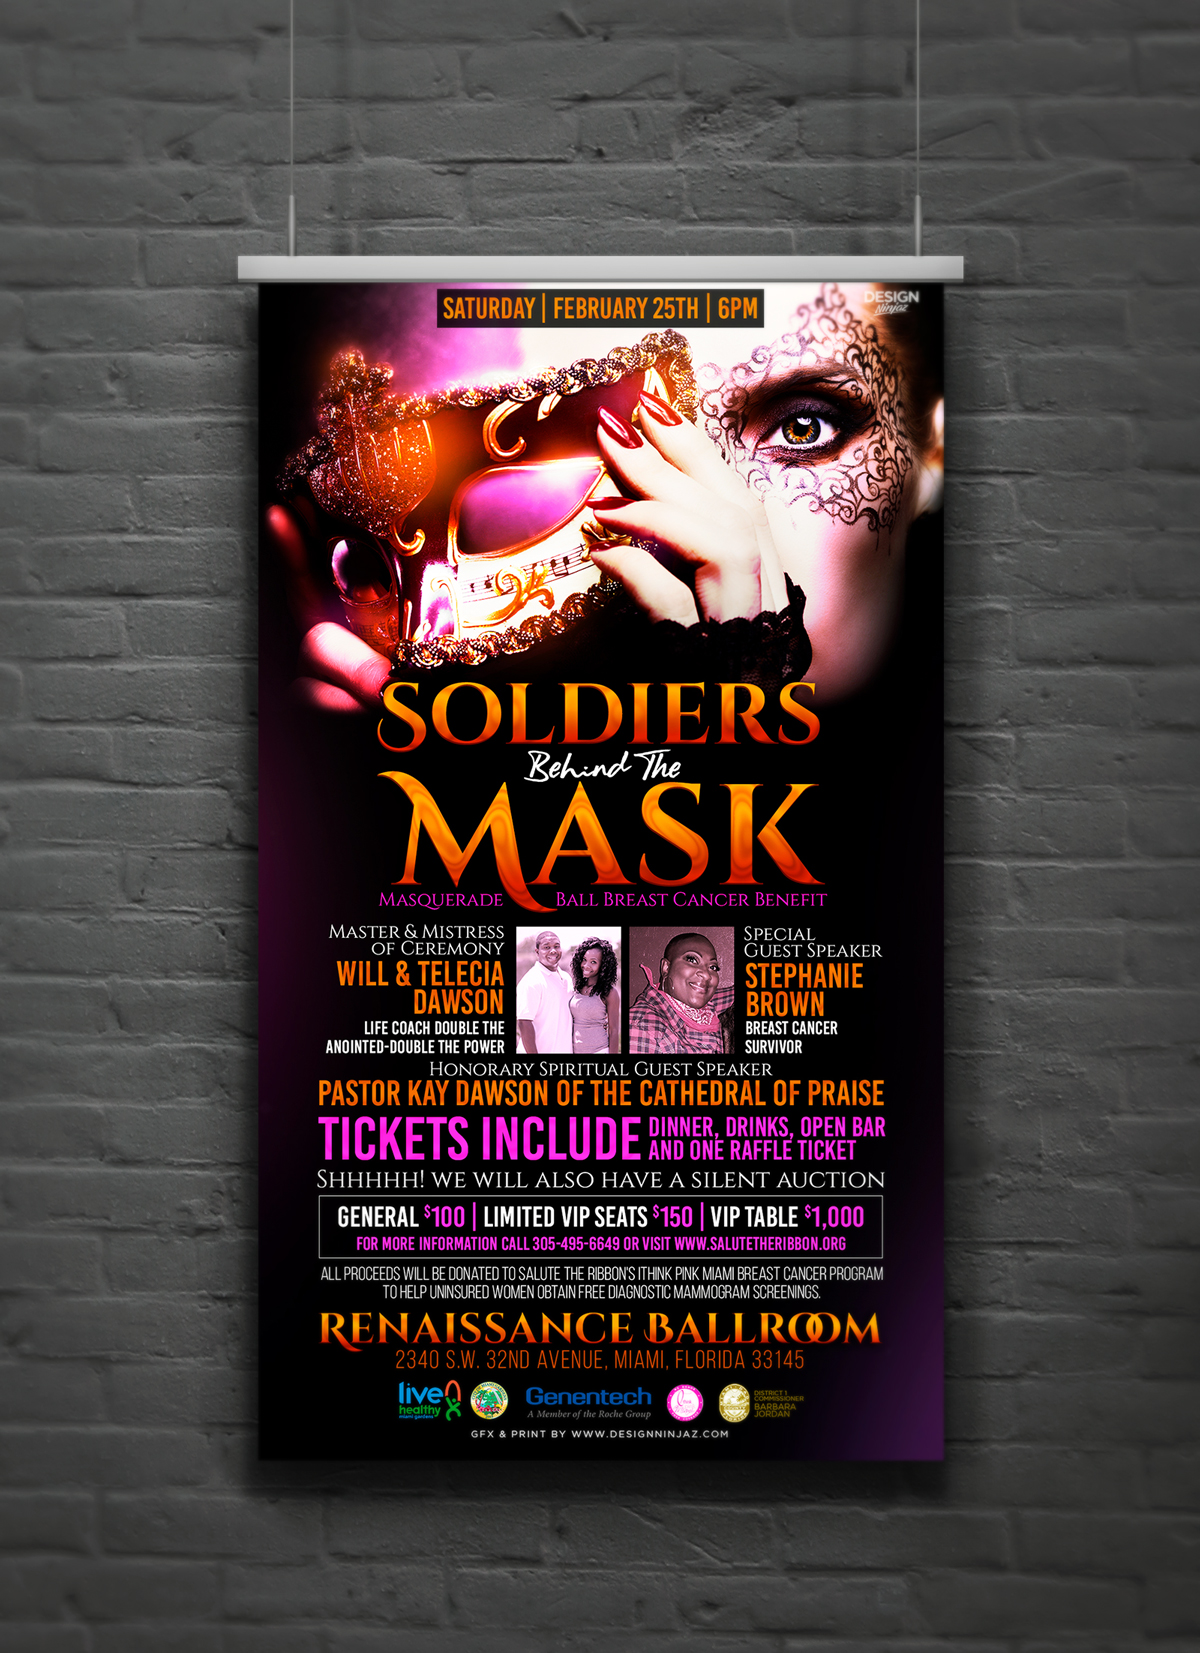 Soldiers Behind The Mask Poster Design & Print Event Branding & Collateral